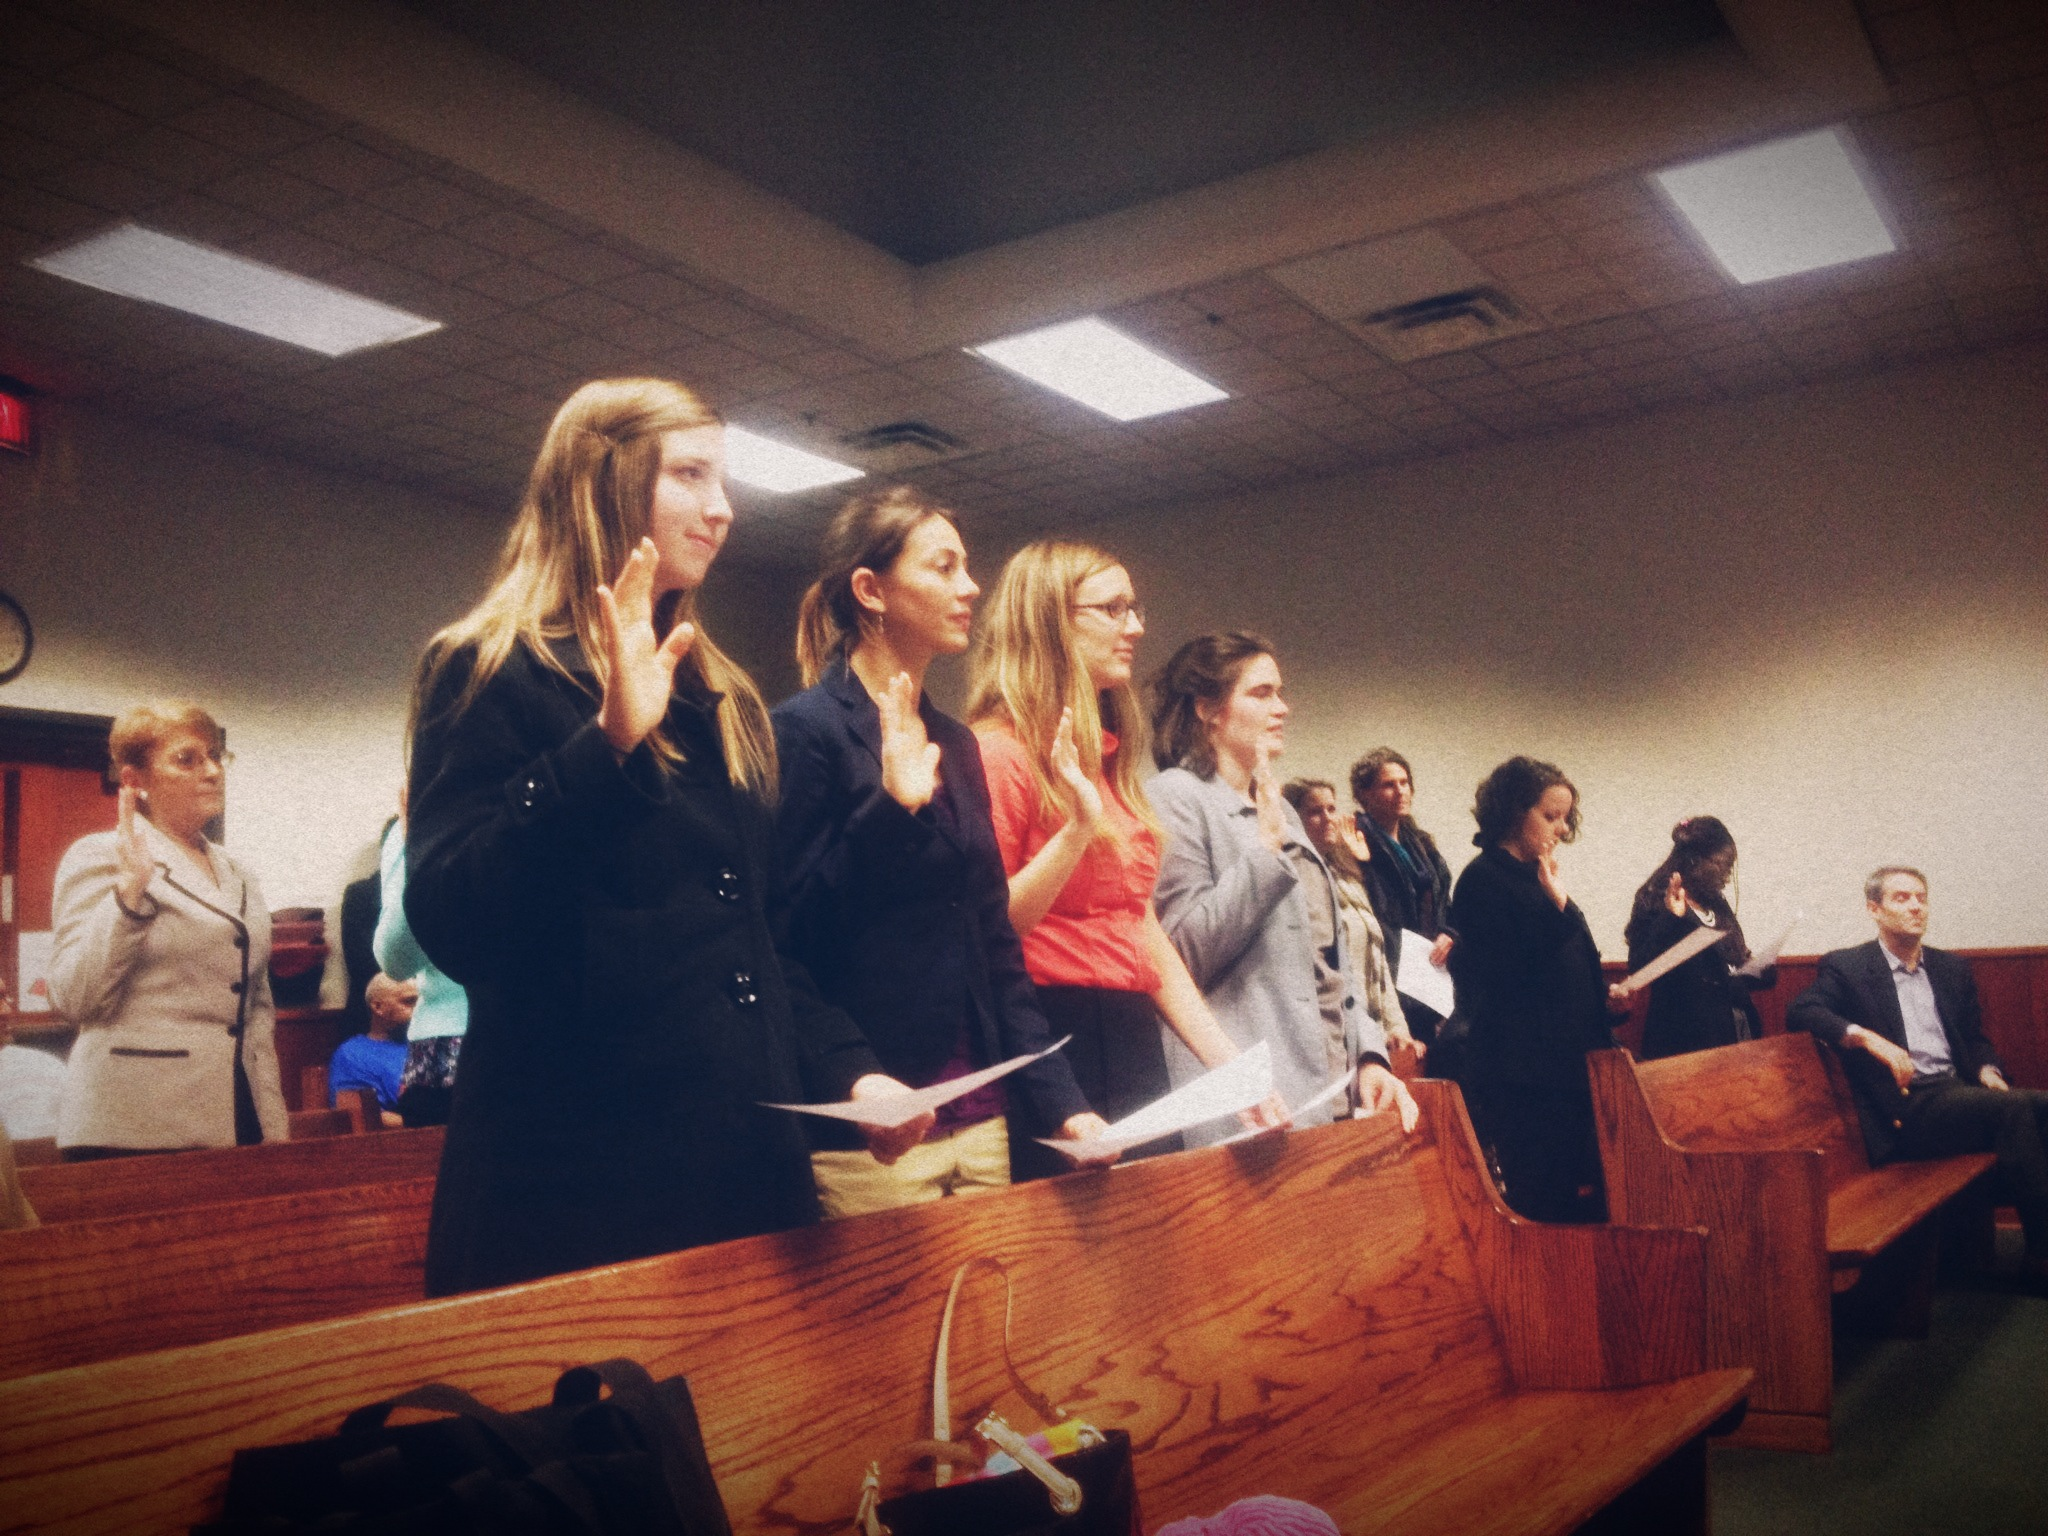 There are over 400,000 children in the foster caresystem in the United States. Nine of our organization's participants are trained to advocate on thebehalf of such children in court. Here, Kelly Jobe,Brittani Collinsworth and Rachel Nowlin are beingsworn in to be court appointed special advocates.